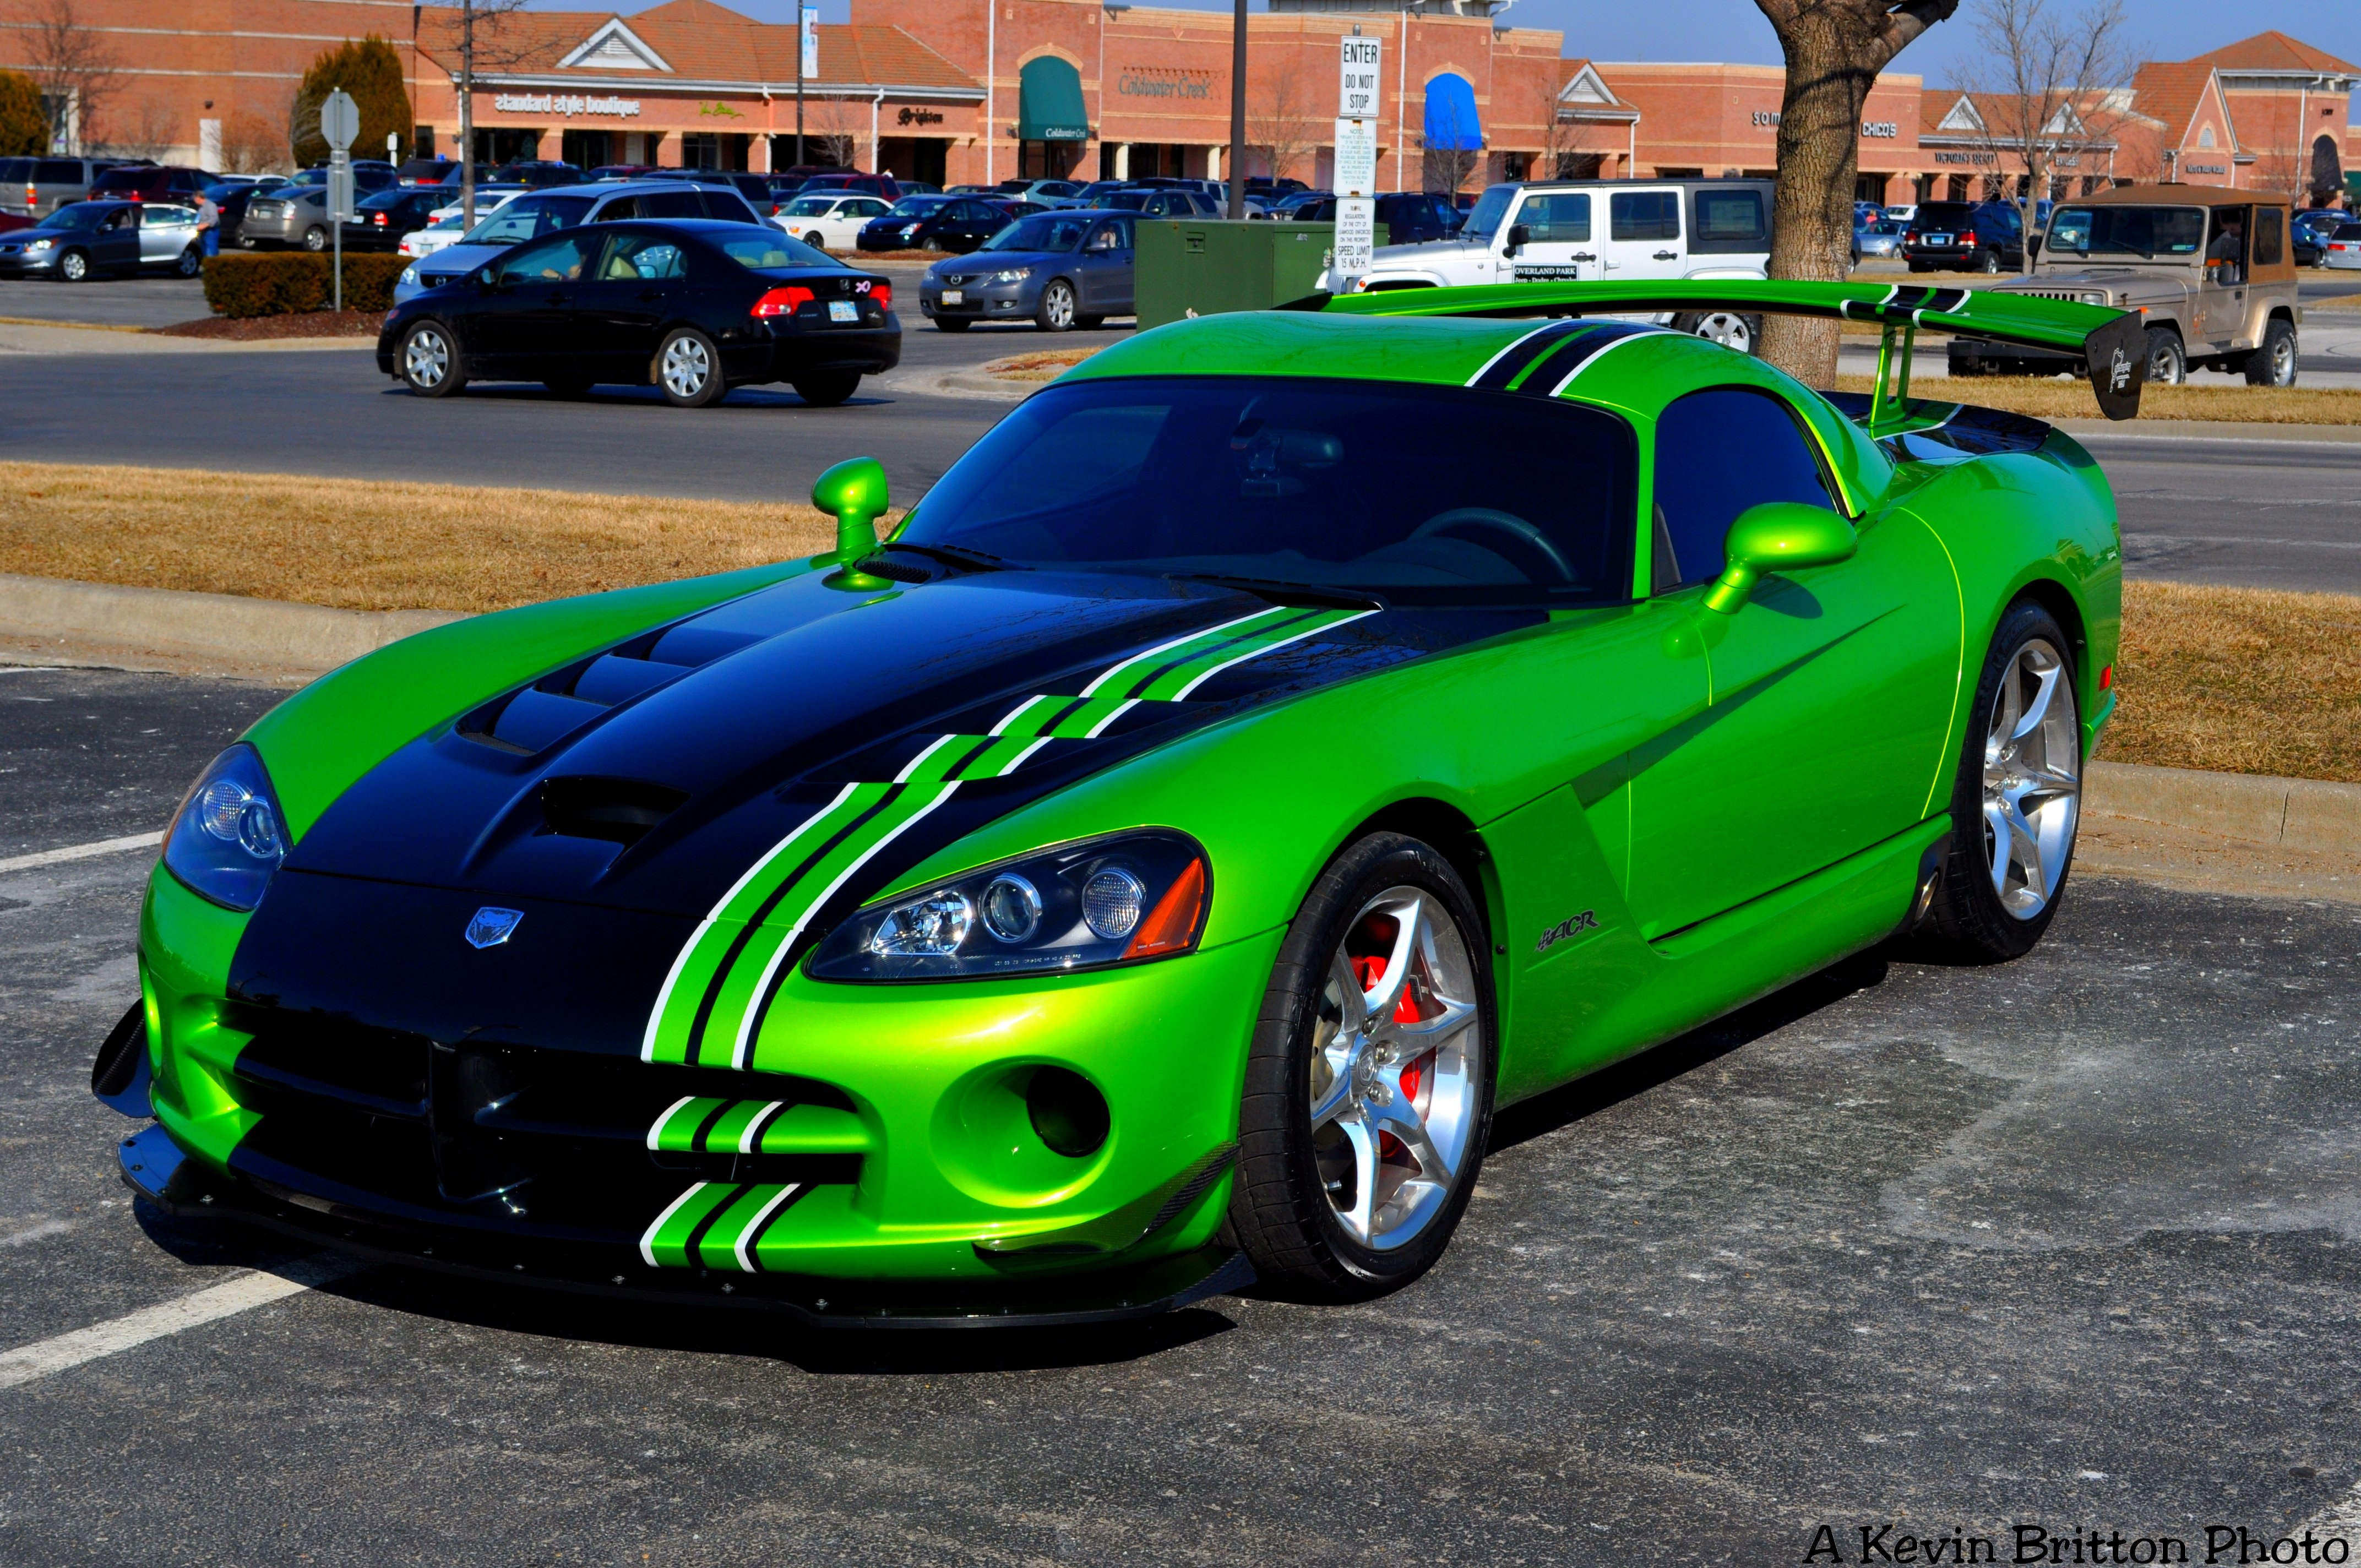 Dodge Viper 2017 Blue >> Dodge gts muscle srt Supercar Viper cars usa blue green vert wallpaper | 4288x2848 | 552628 ...